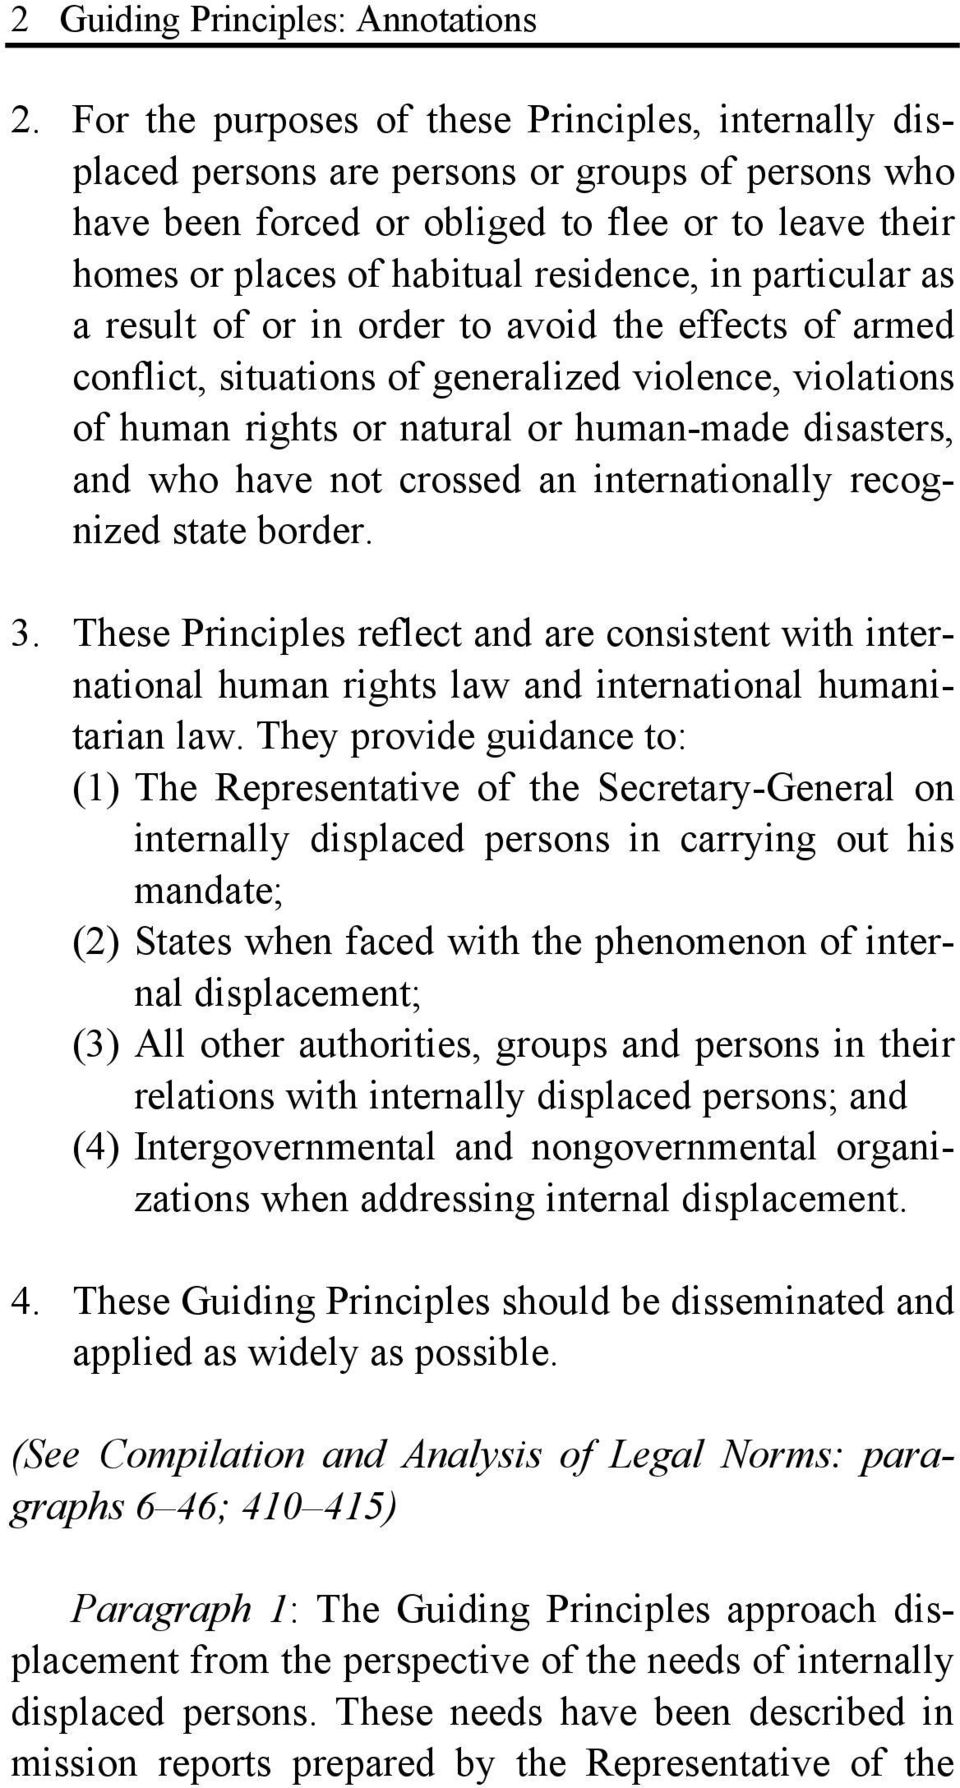 guiding principles on internally displacements Massive internal displacements in kenya due to politically instigated ethnic clashes in the united nations guiding principles on idps executive summary.